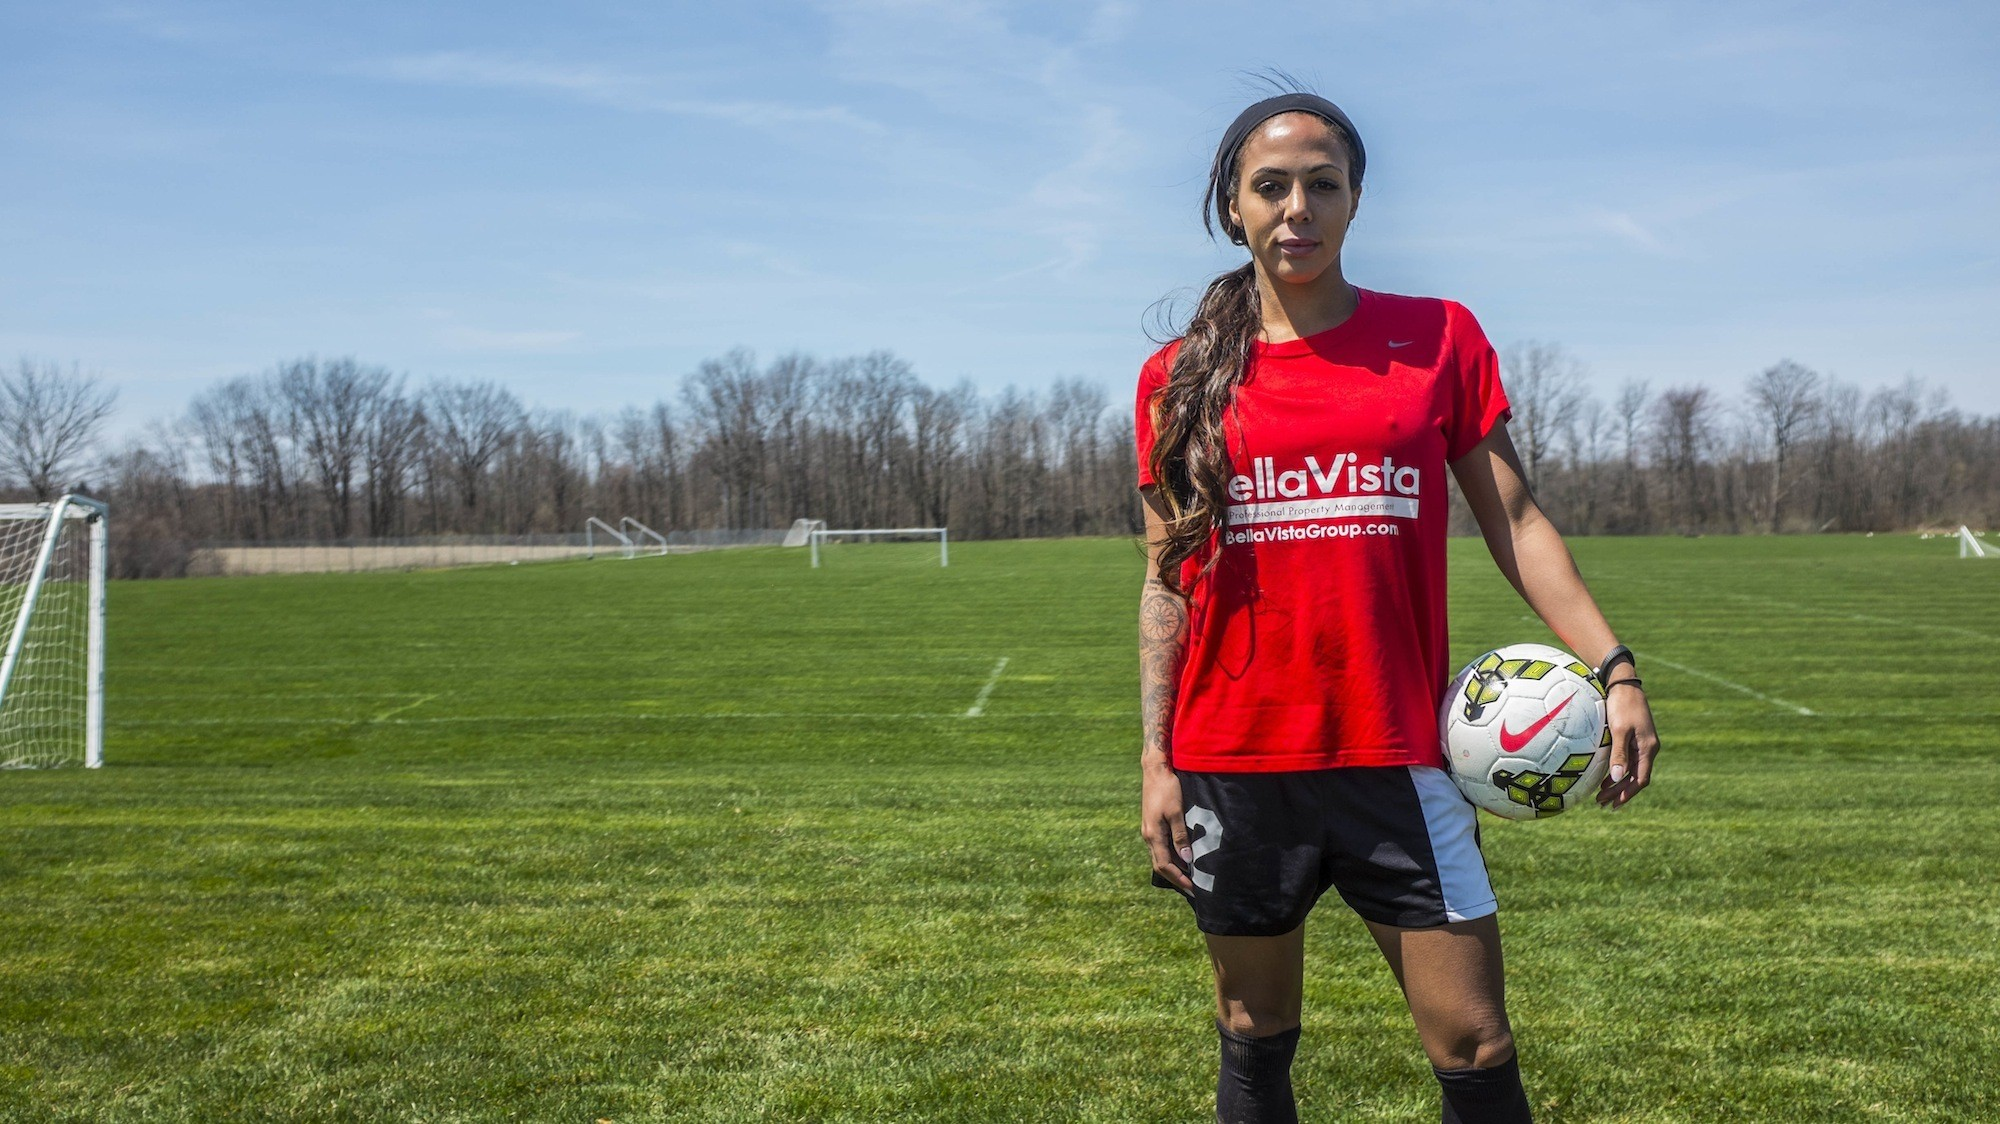 Sydney Leroux on Canada, The U.S., FIFA World Cup, and Artificial Turf